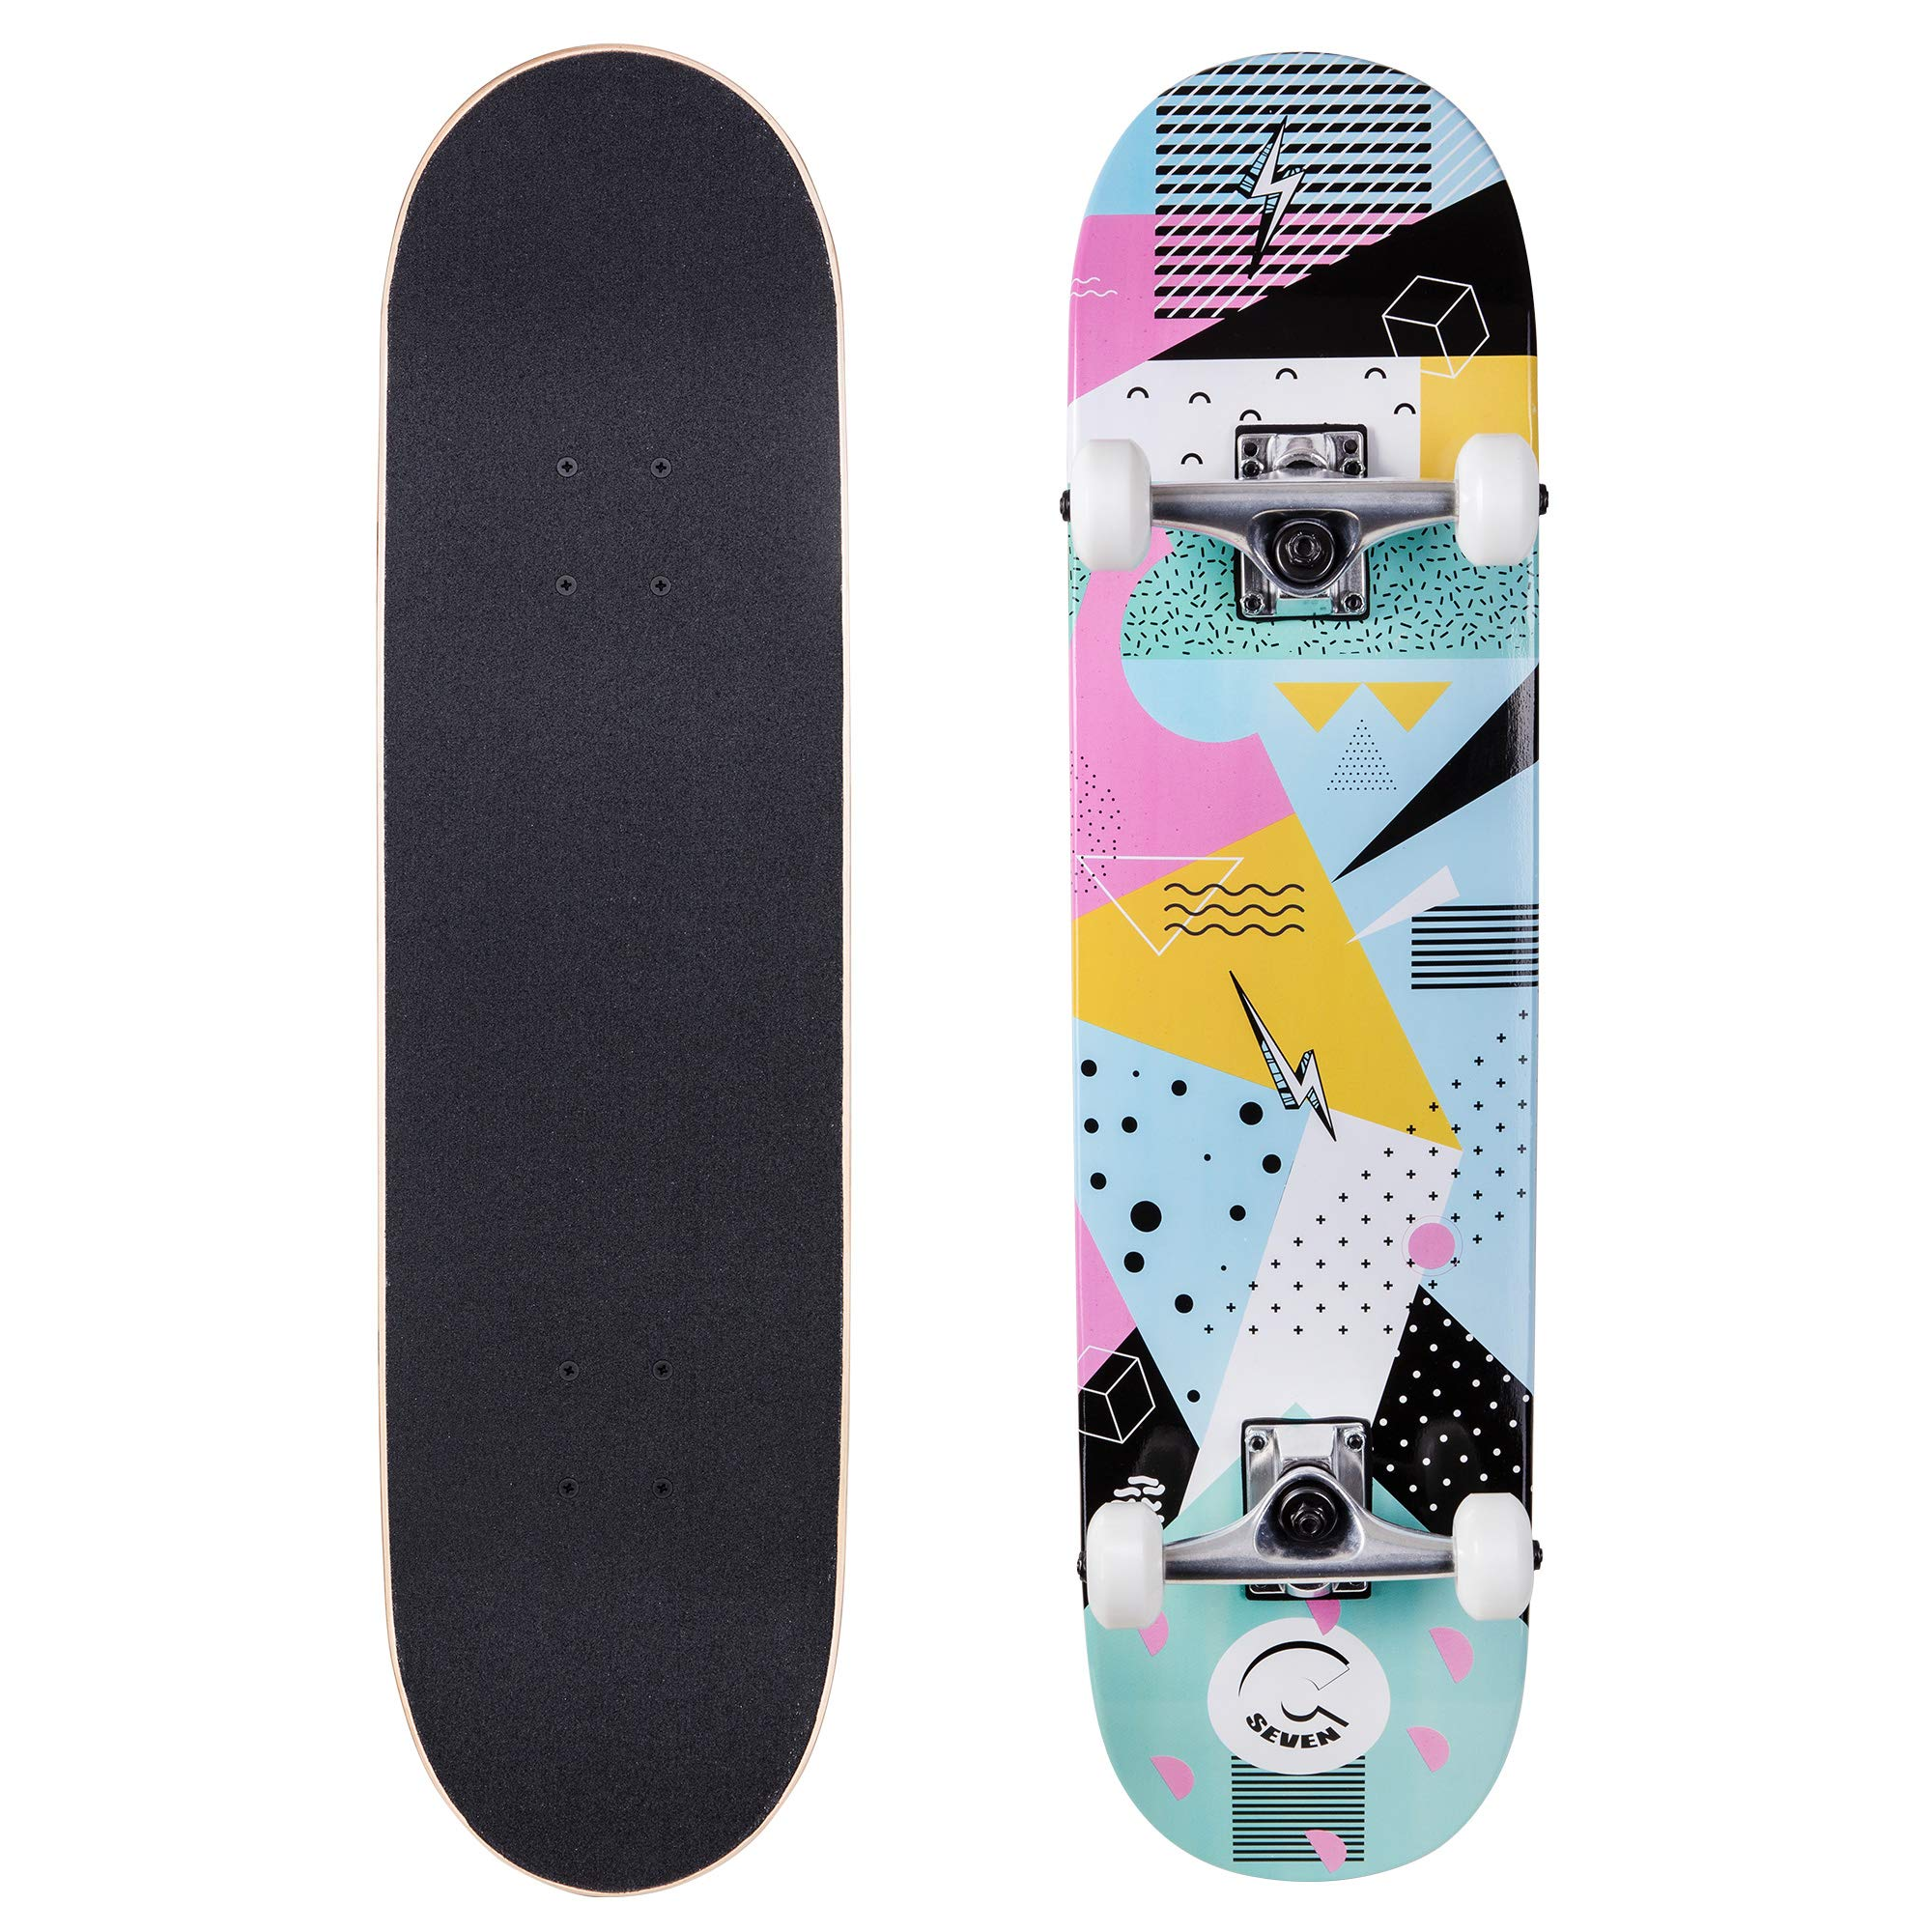 Cal 7 Complete Skateboard, Popsicle Double Kicktail Maple Deck, Skate Styles in Graphic Designs (7.75'' 90's Hella)